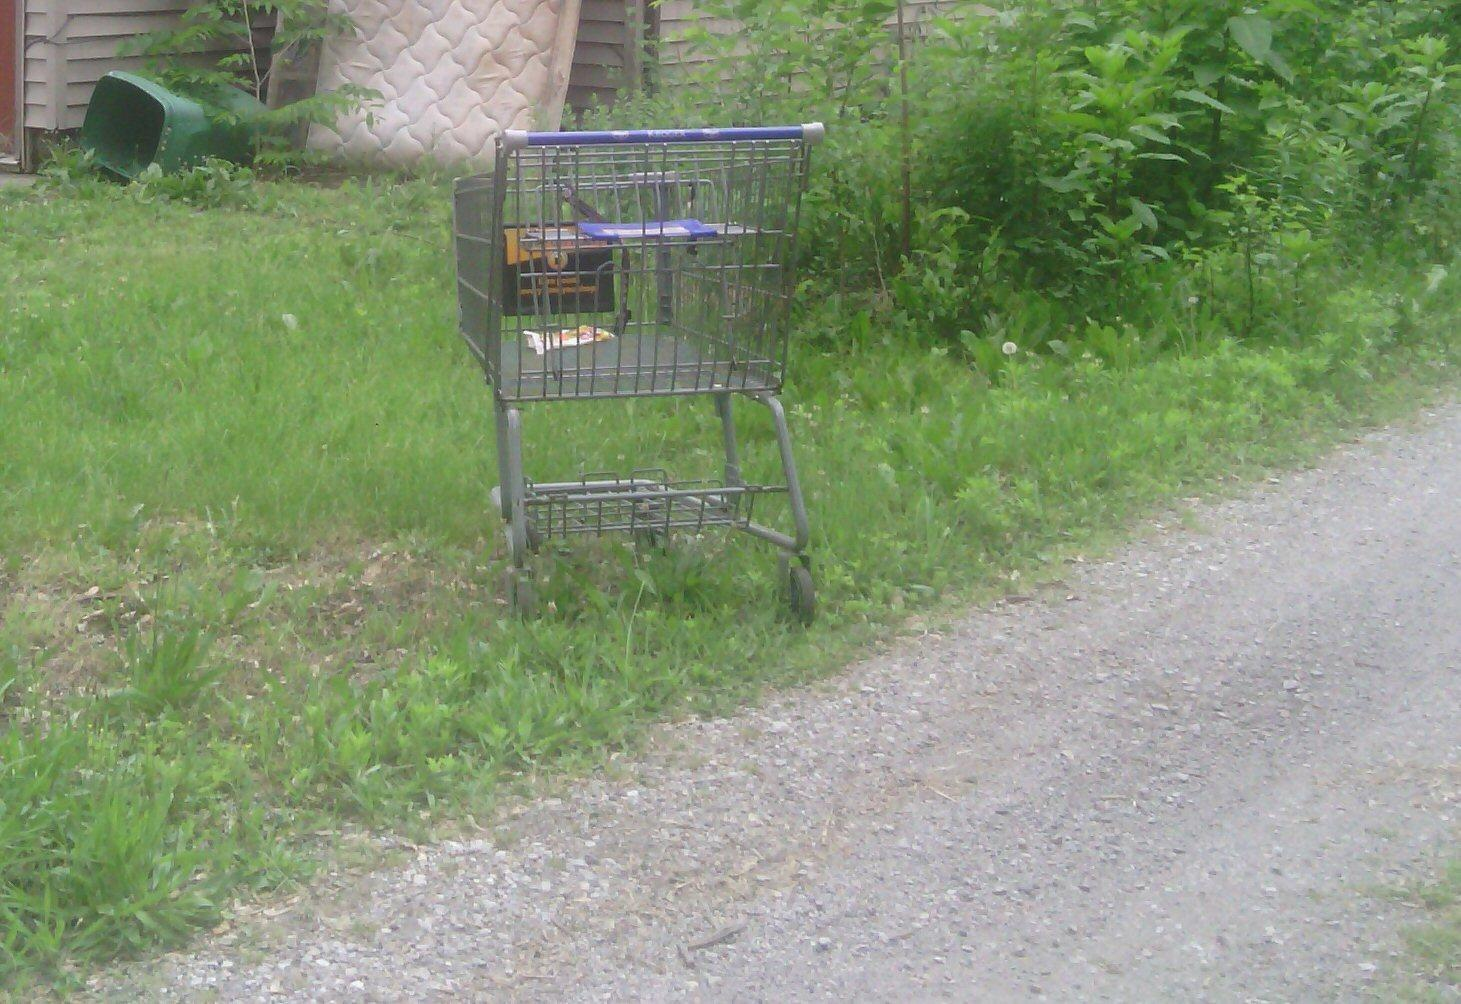 If you were a shopping cart, where would you get left?